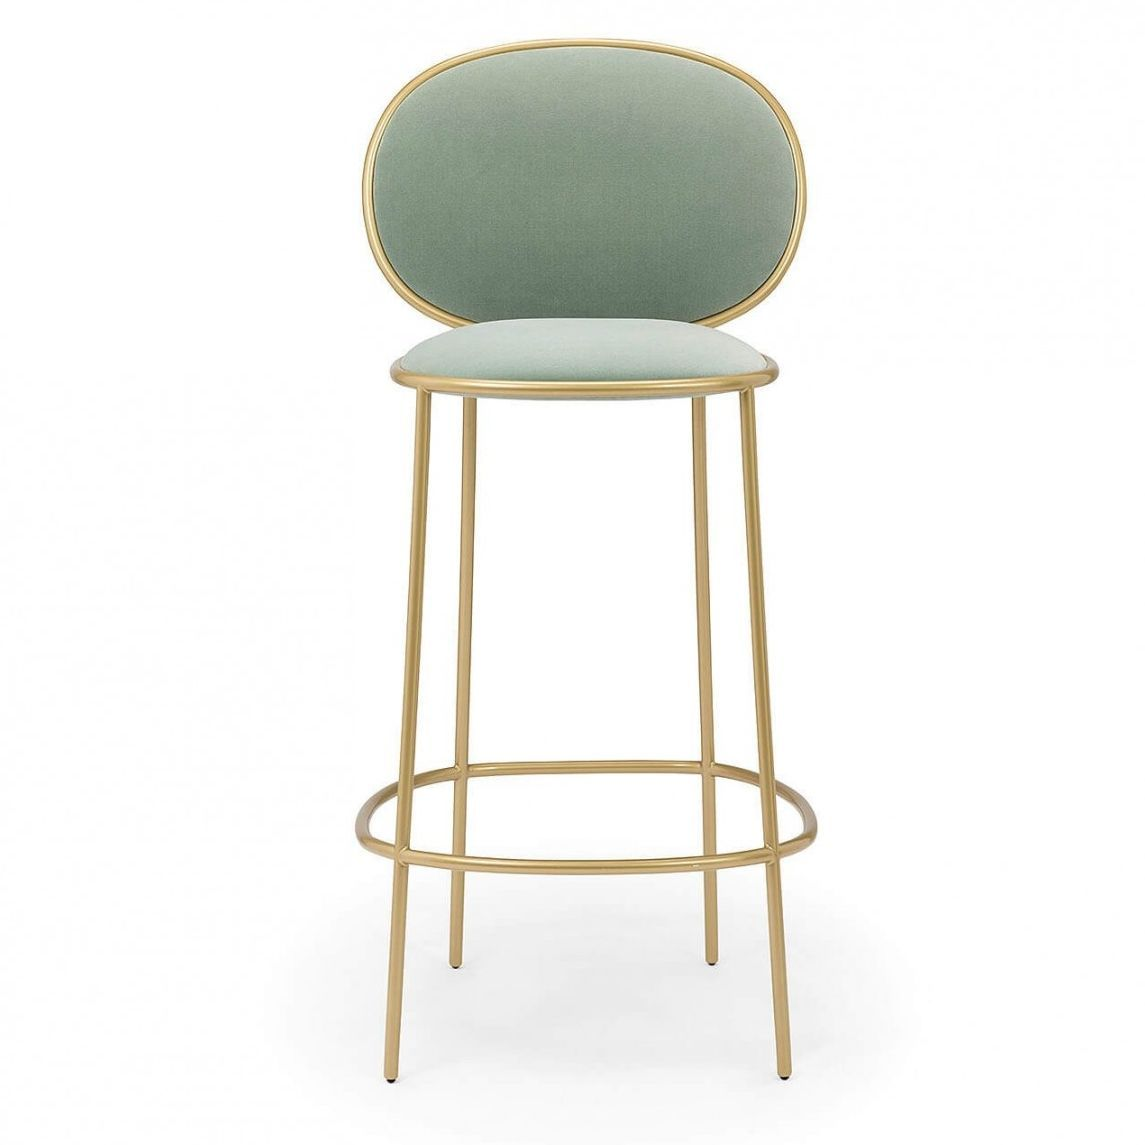 This Soft Mint Green Bar Stool Is A Fun Addition To Any Kitchen